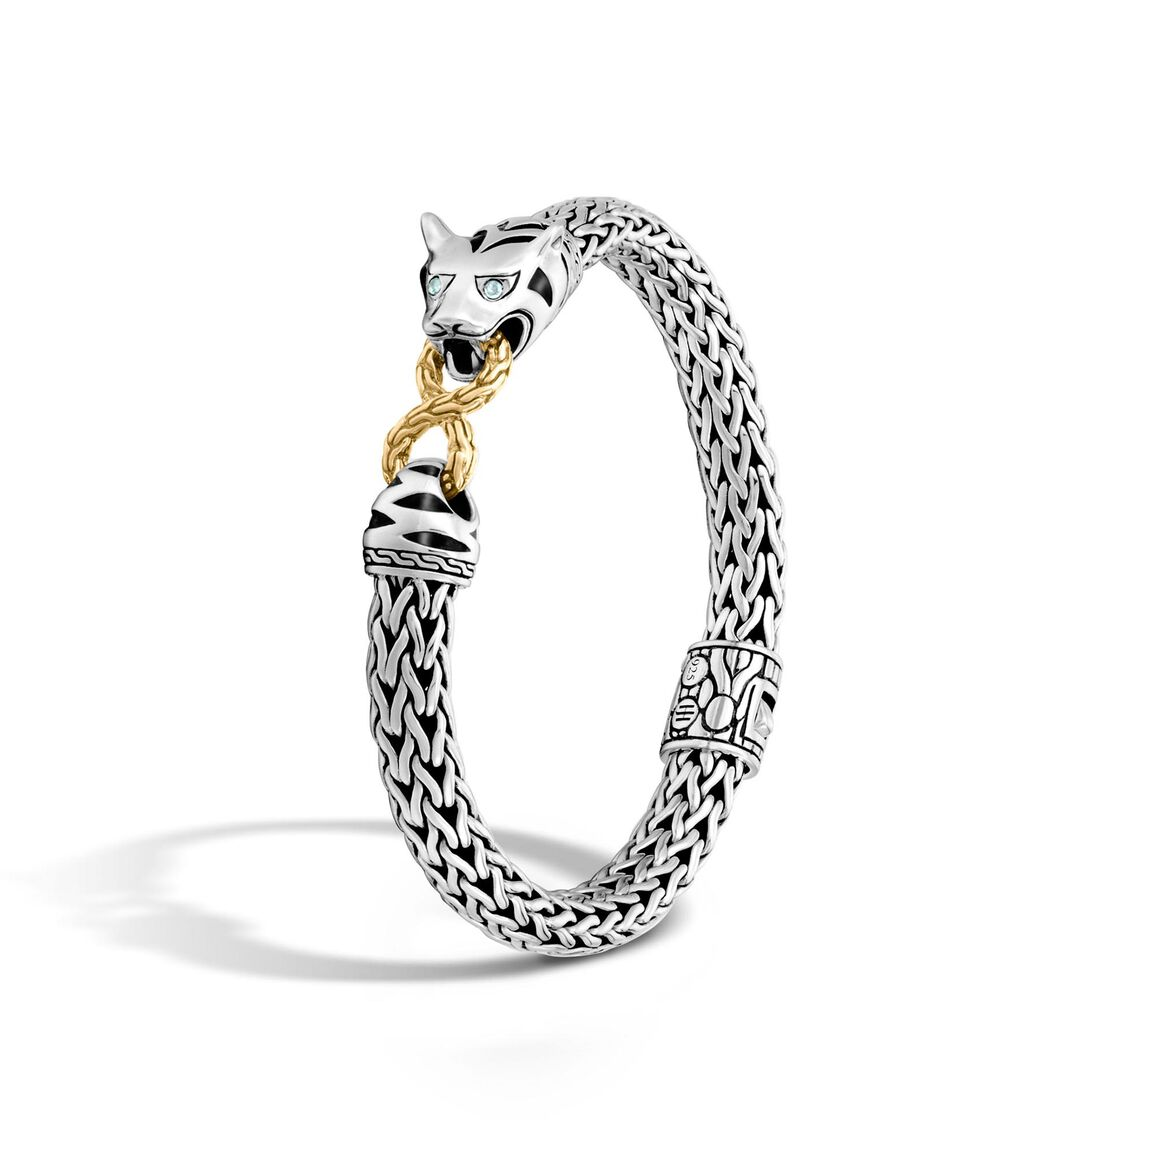 Legends Macan 7.5MM Station Bracelet in Silver and 18K Gold